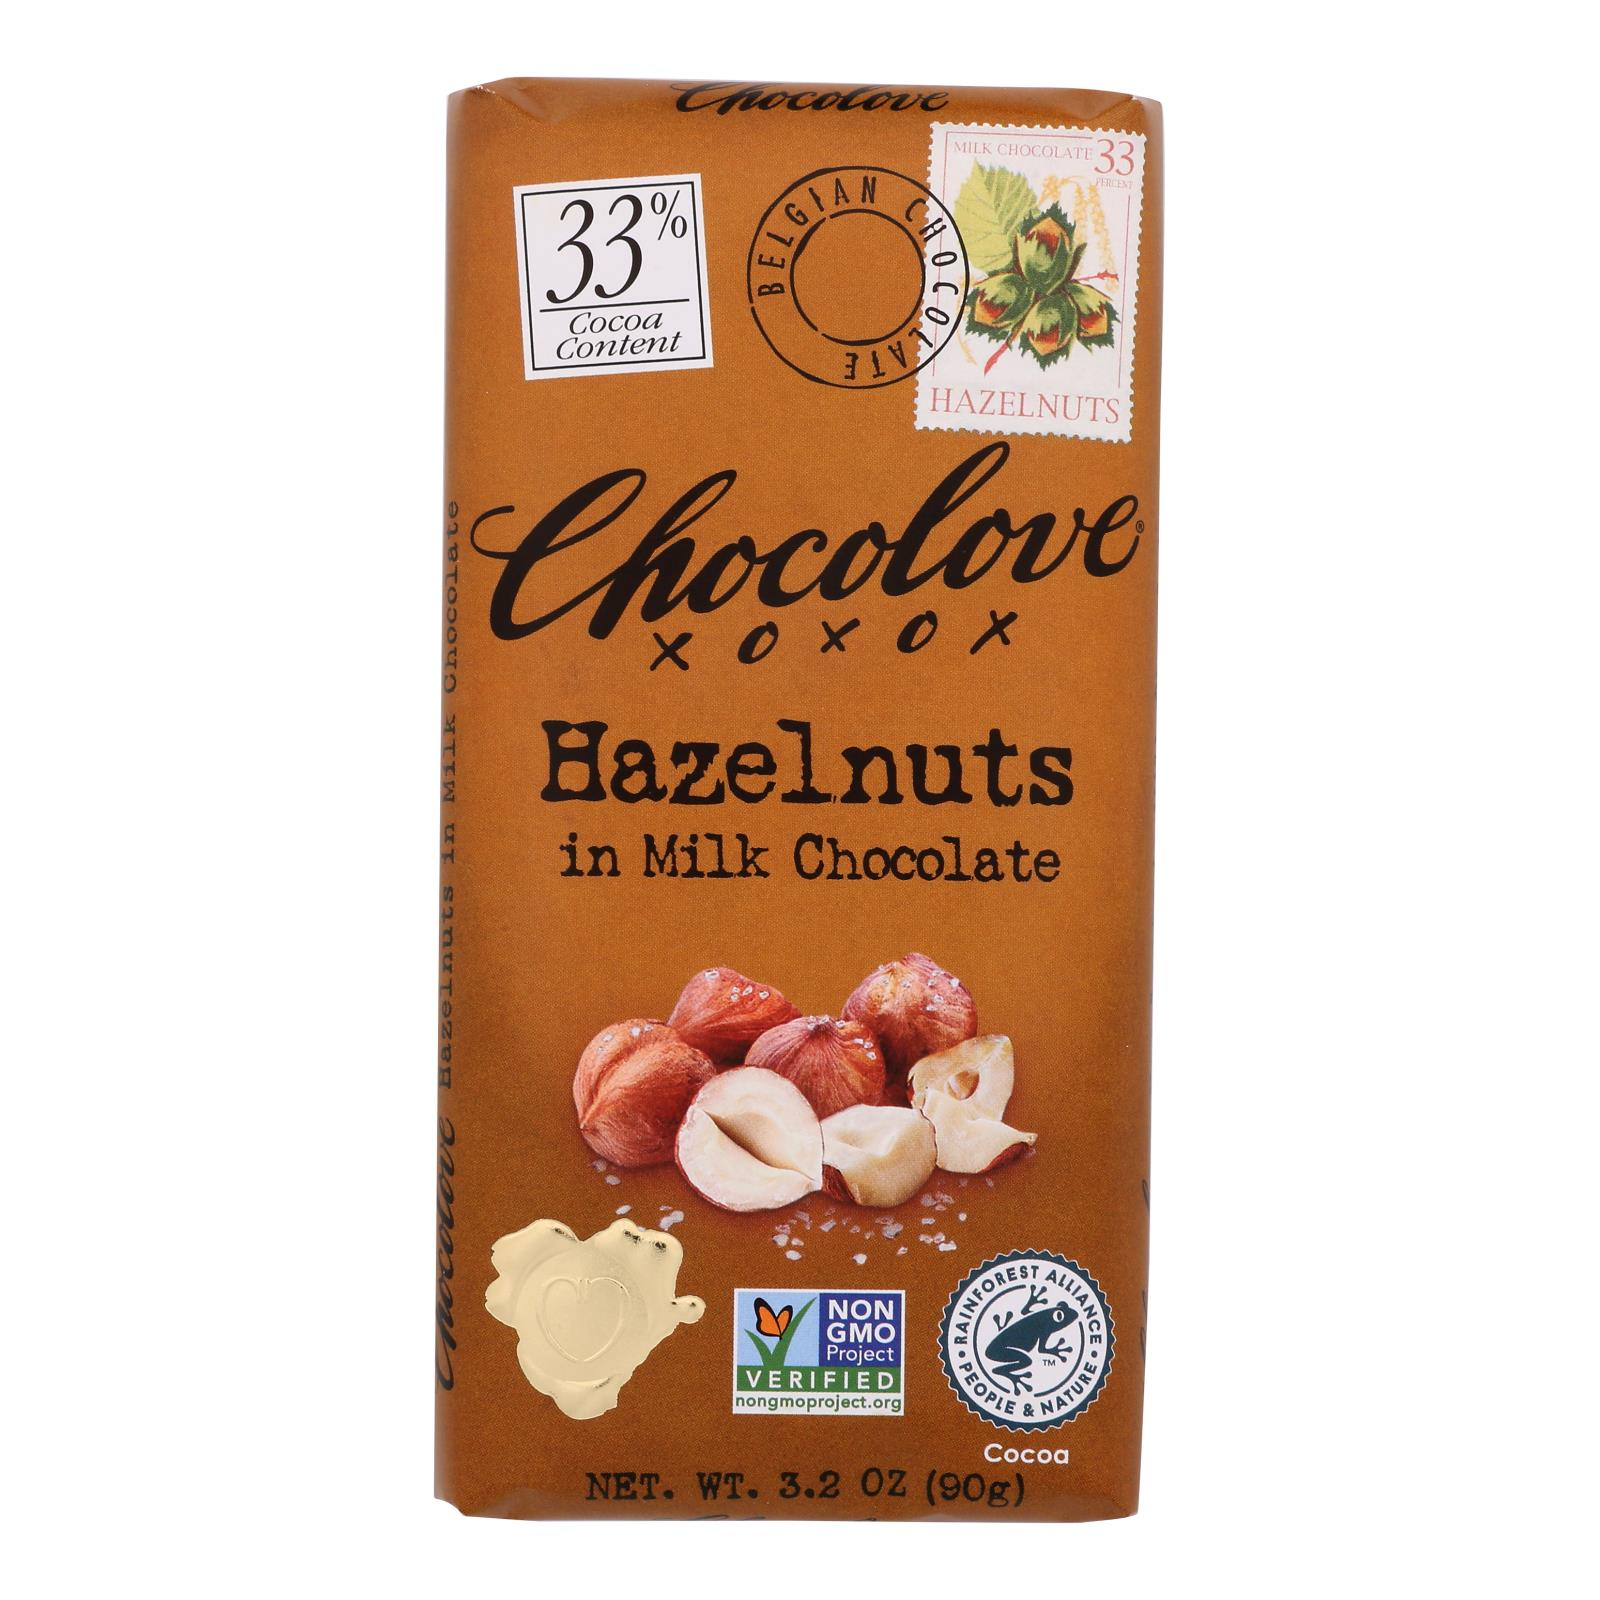 Chocolove Xoxox - Premium Chocolate Bar - Milk Chocolate - Hazelnuts - 3.2 oz Bars - Case of 12